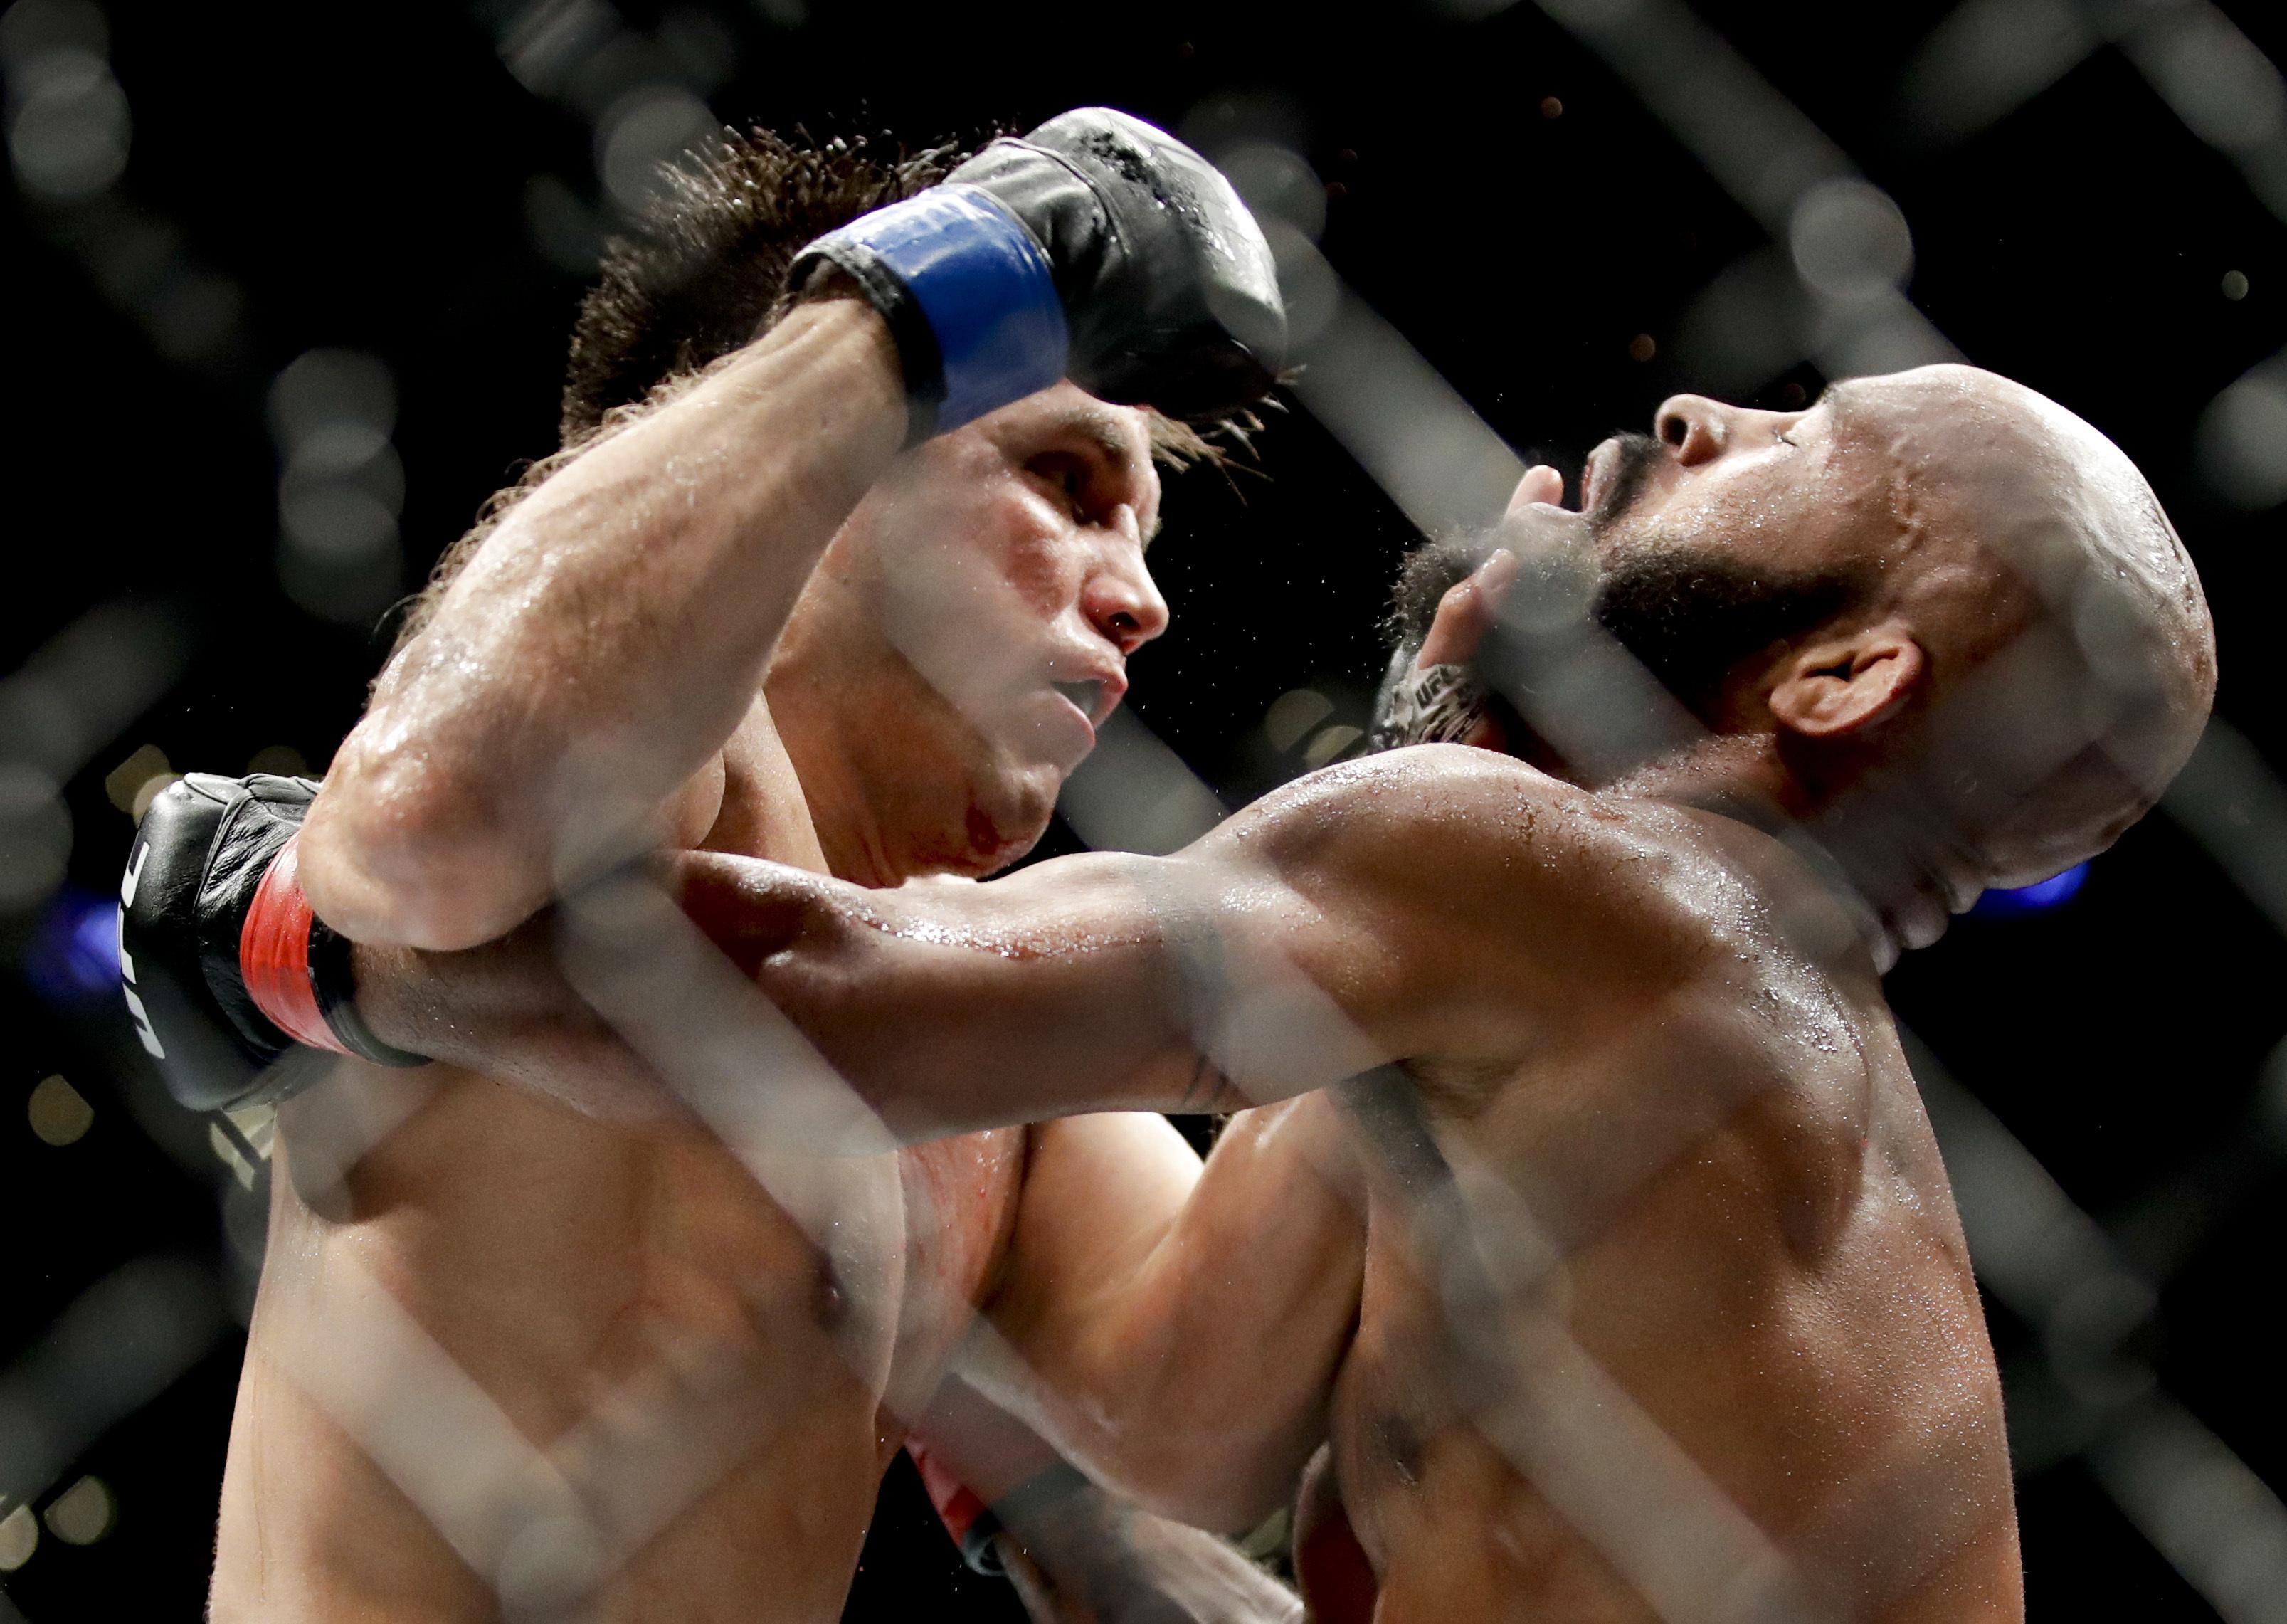 Johnson's defeat to Cejudo was his first in almost seven years